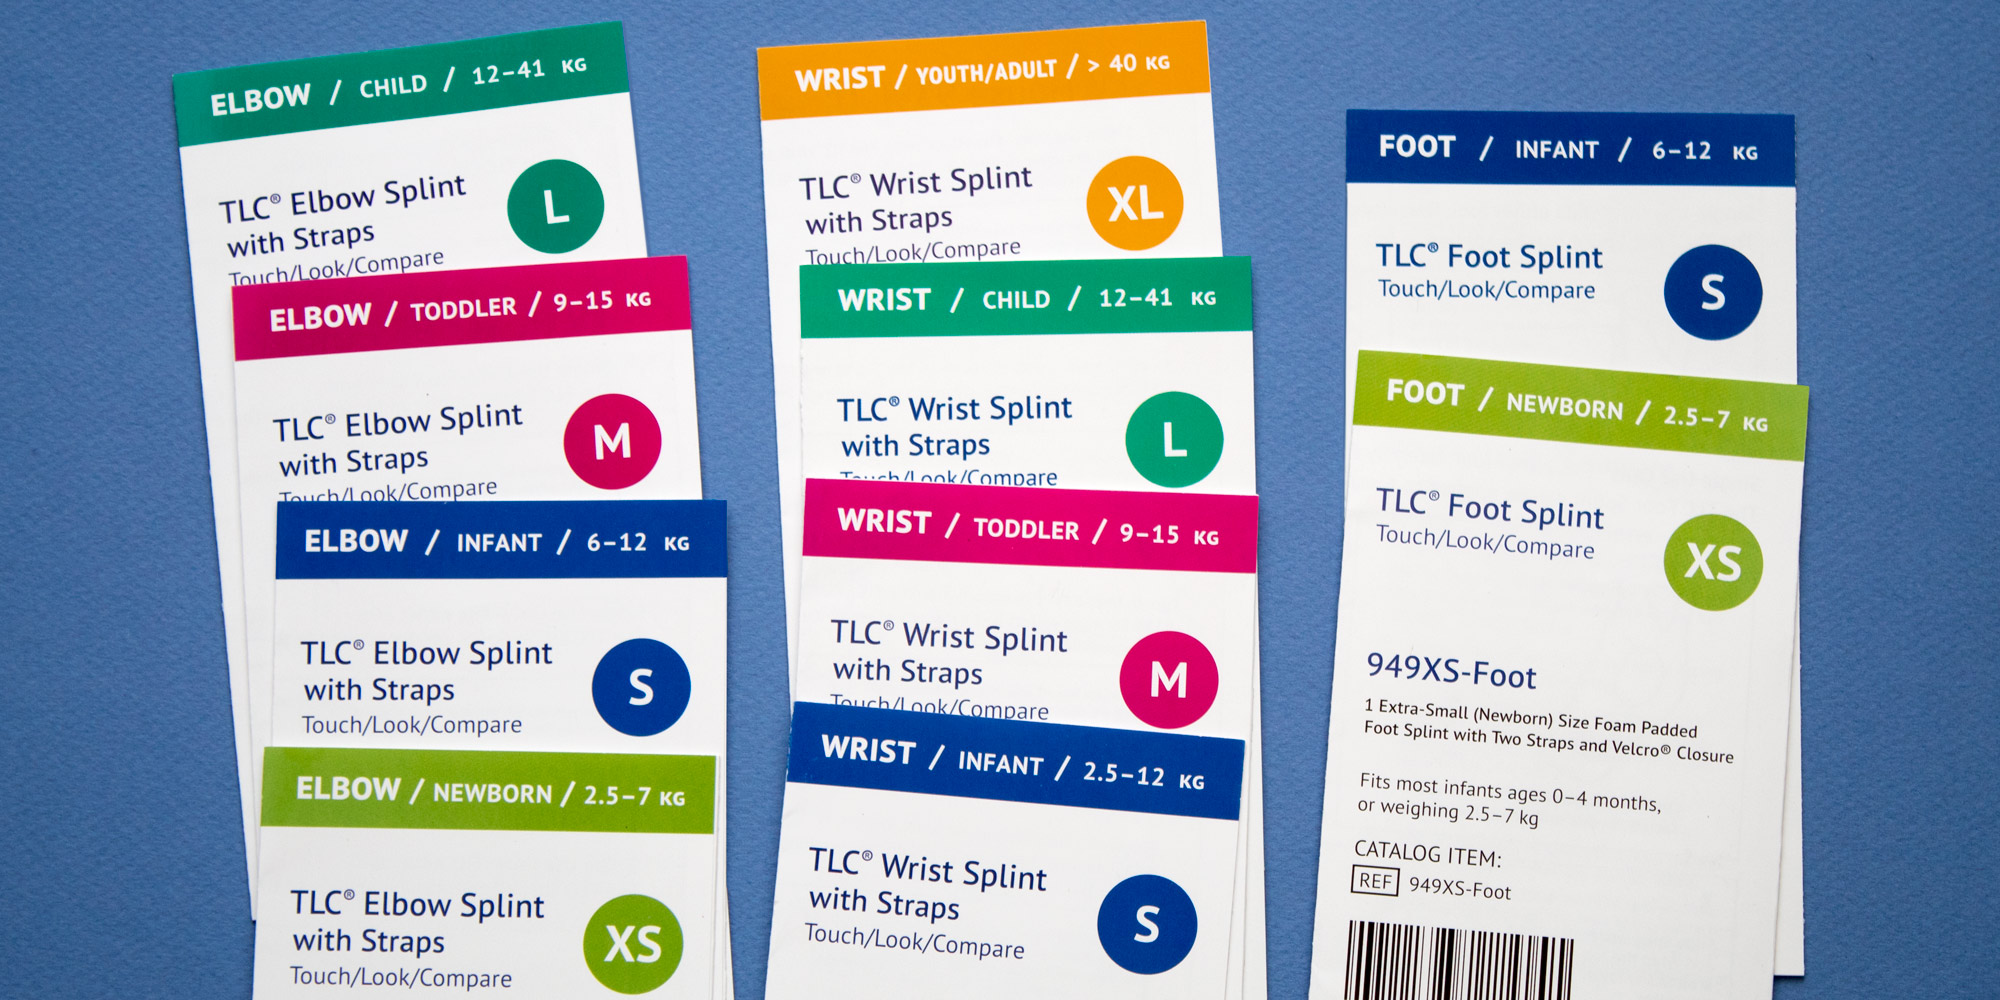 The full range of TLC UltraSplint packaging inserts